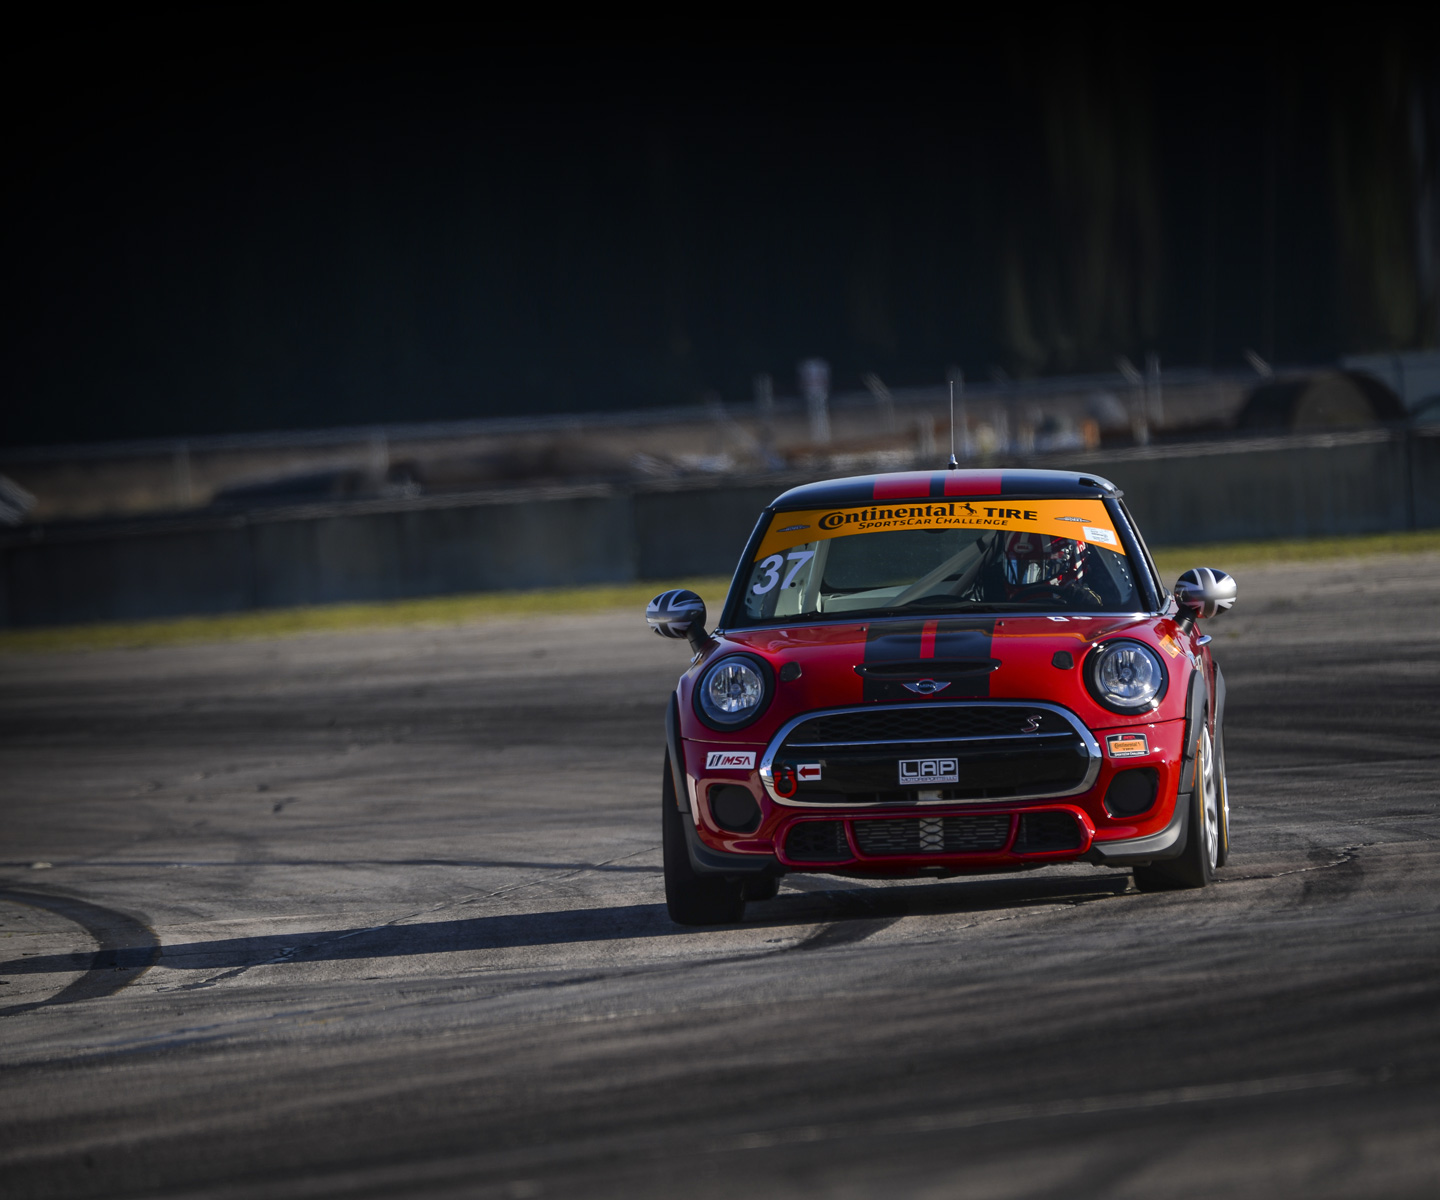 MINI John Cooper Works Racing